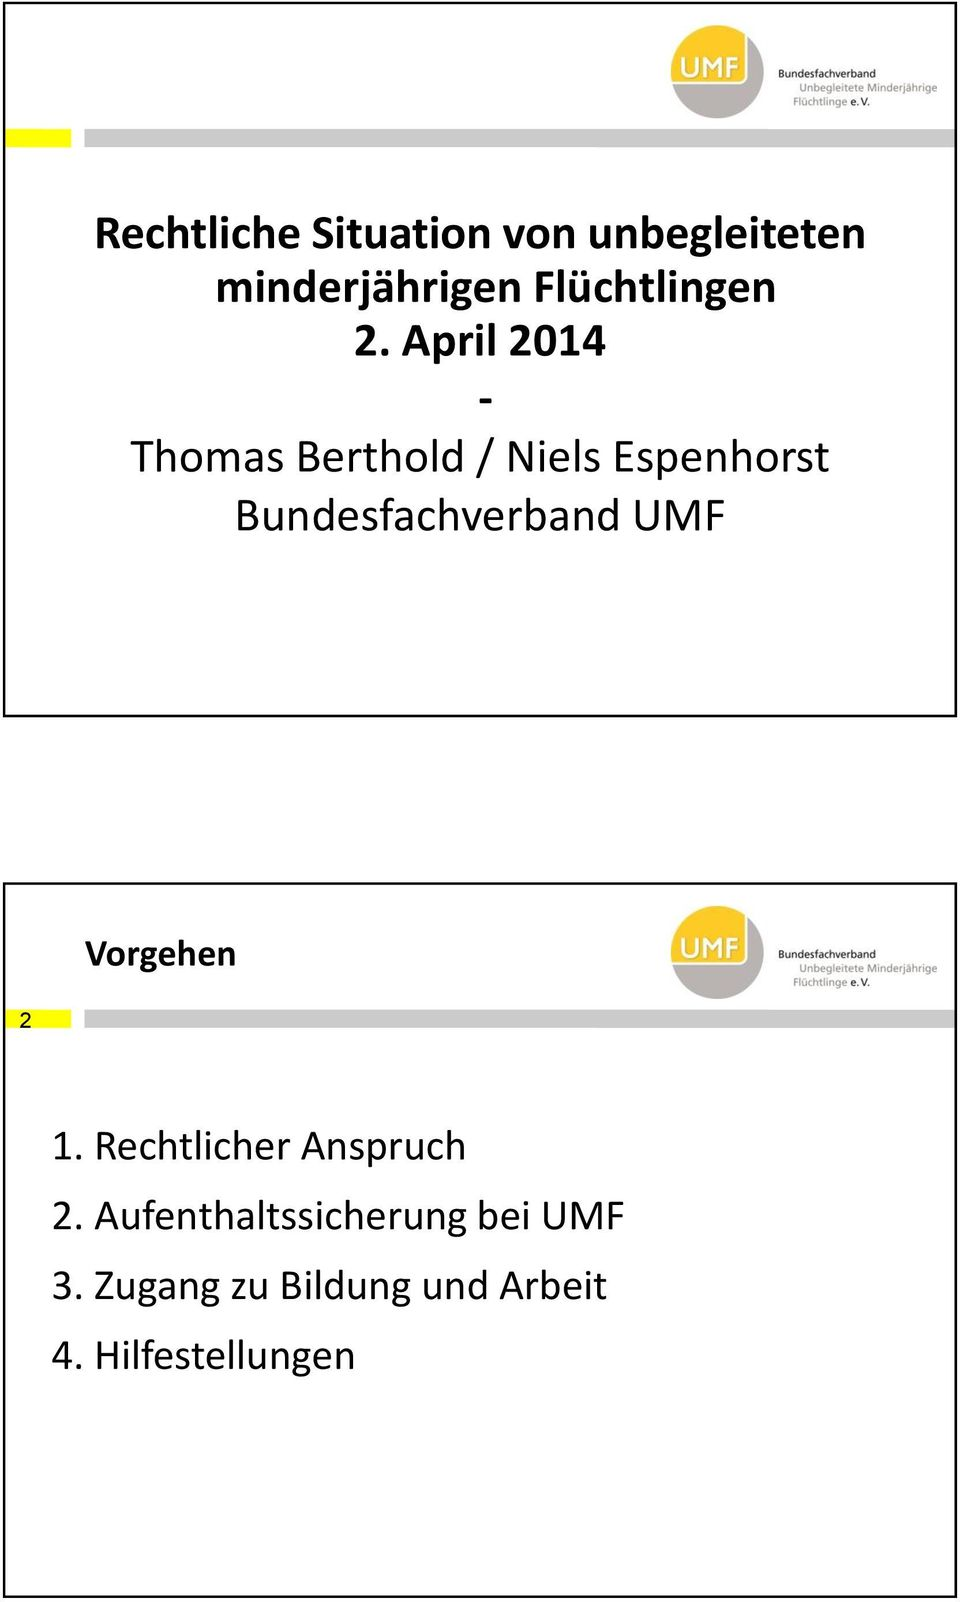 April 2014 - Thomas Berthold / Niels Espenhorst